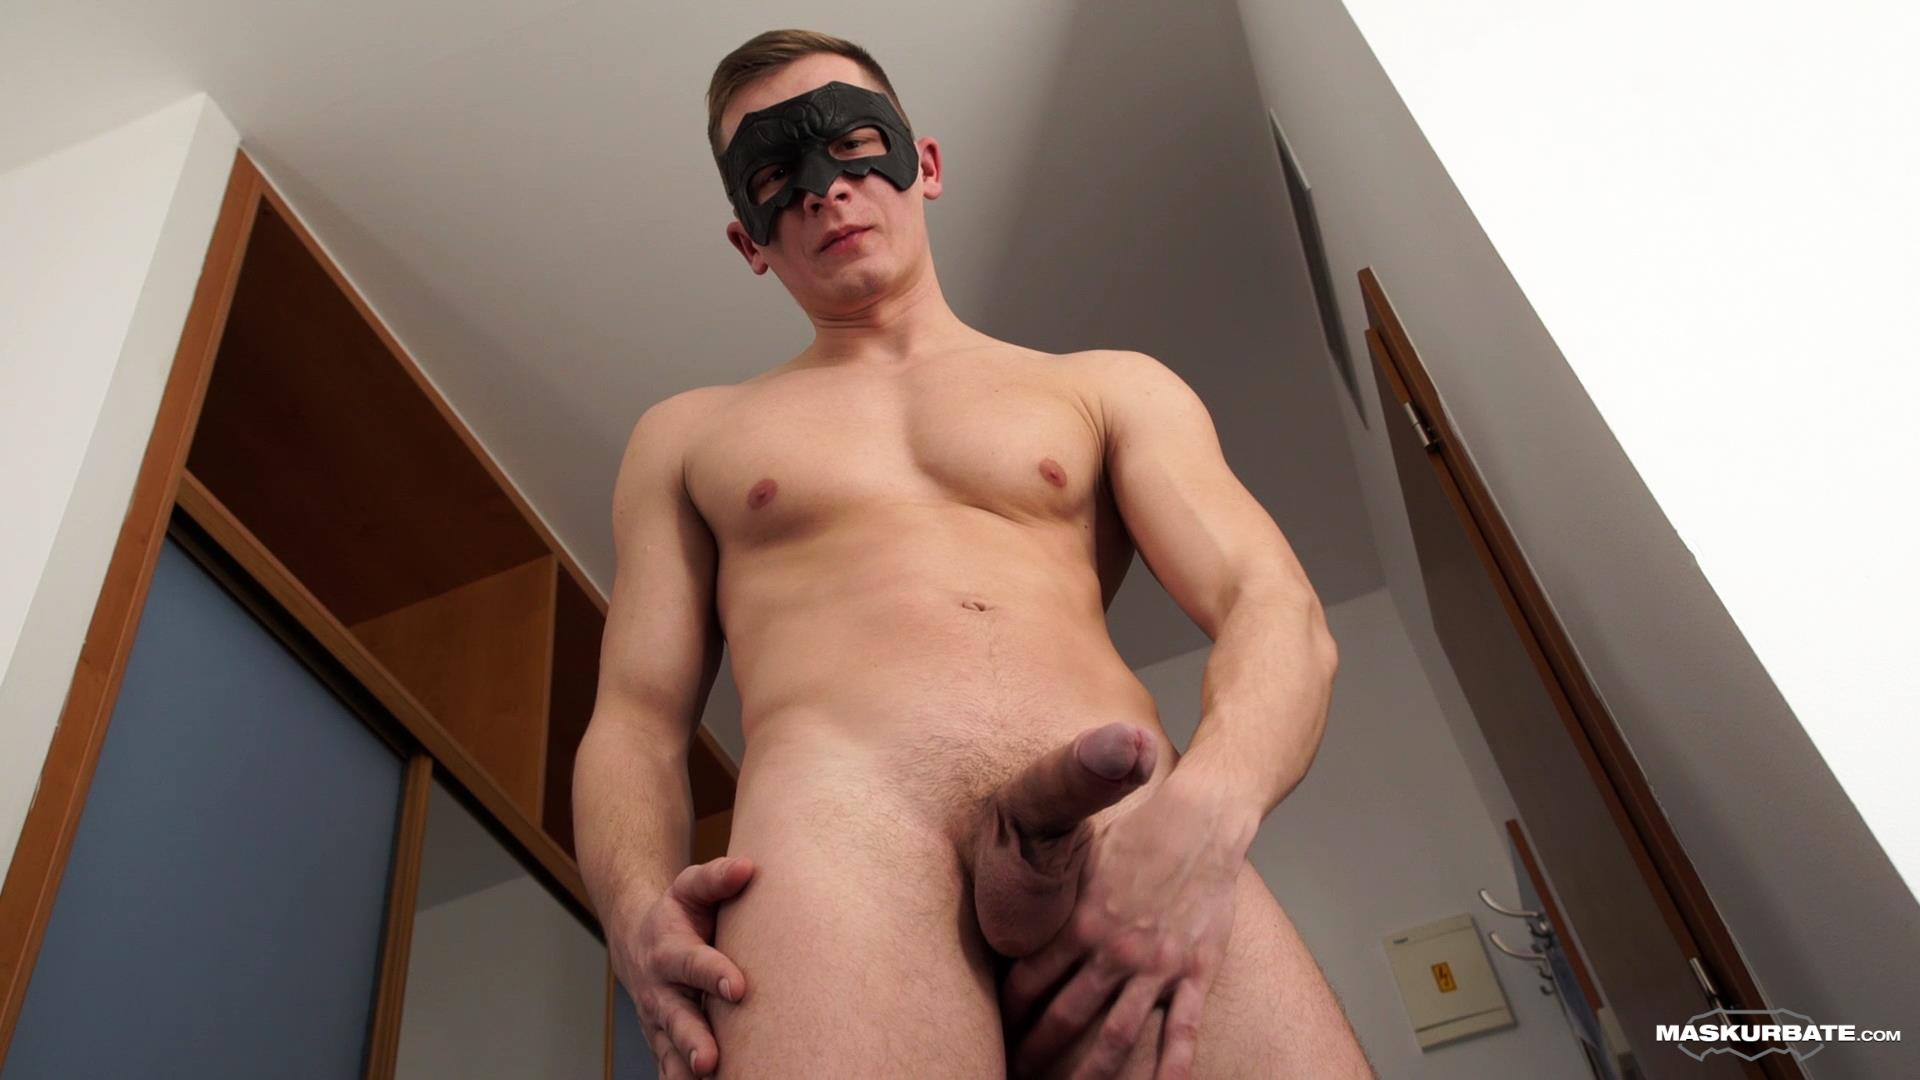 Maskurbate-Andy-Hotel-Bellman-Strokes-Big-Uncut-Cock-04 Paying The Hotel Bellman To Jerk His Big Uncut Cock In My Room